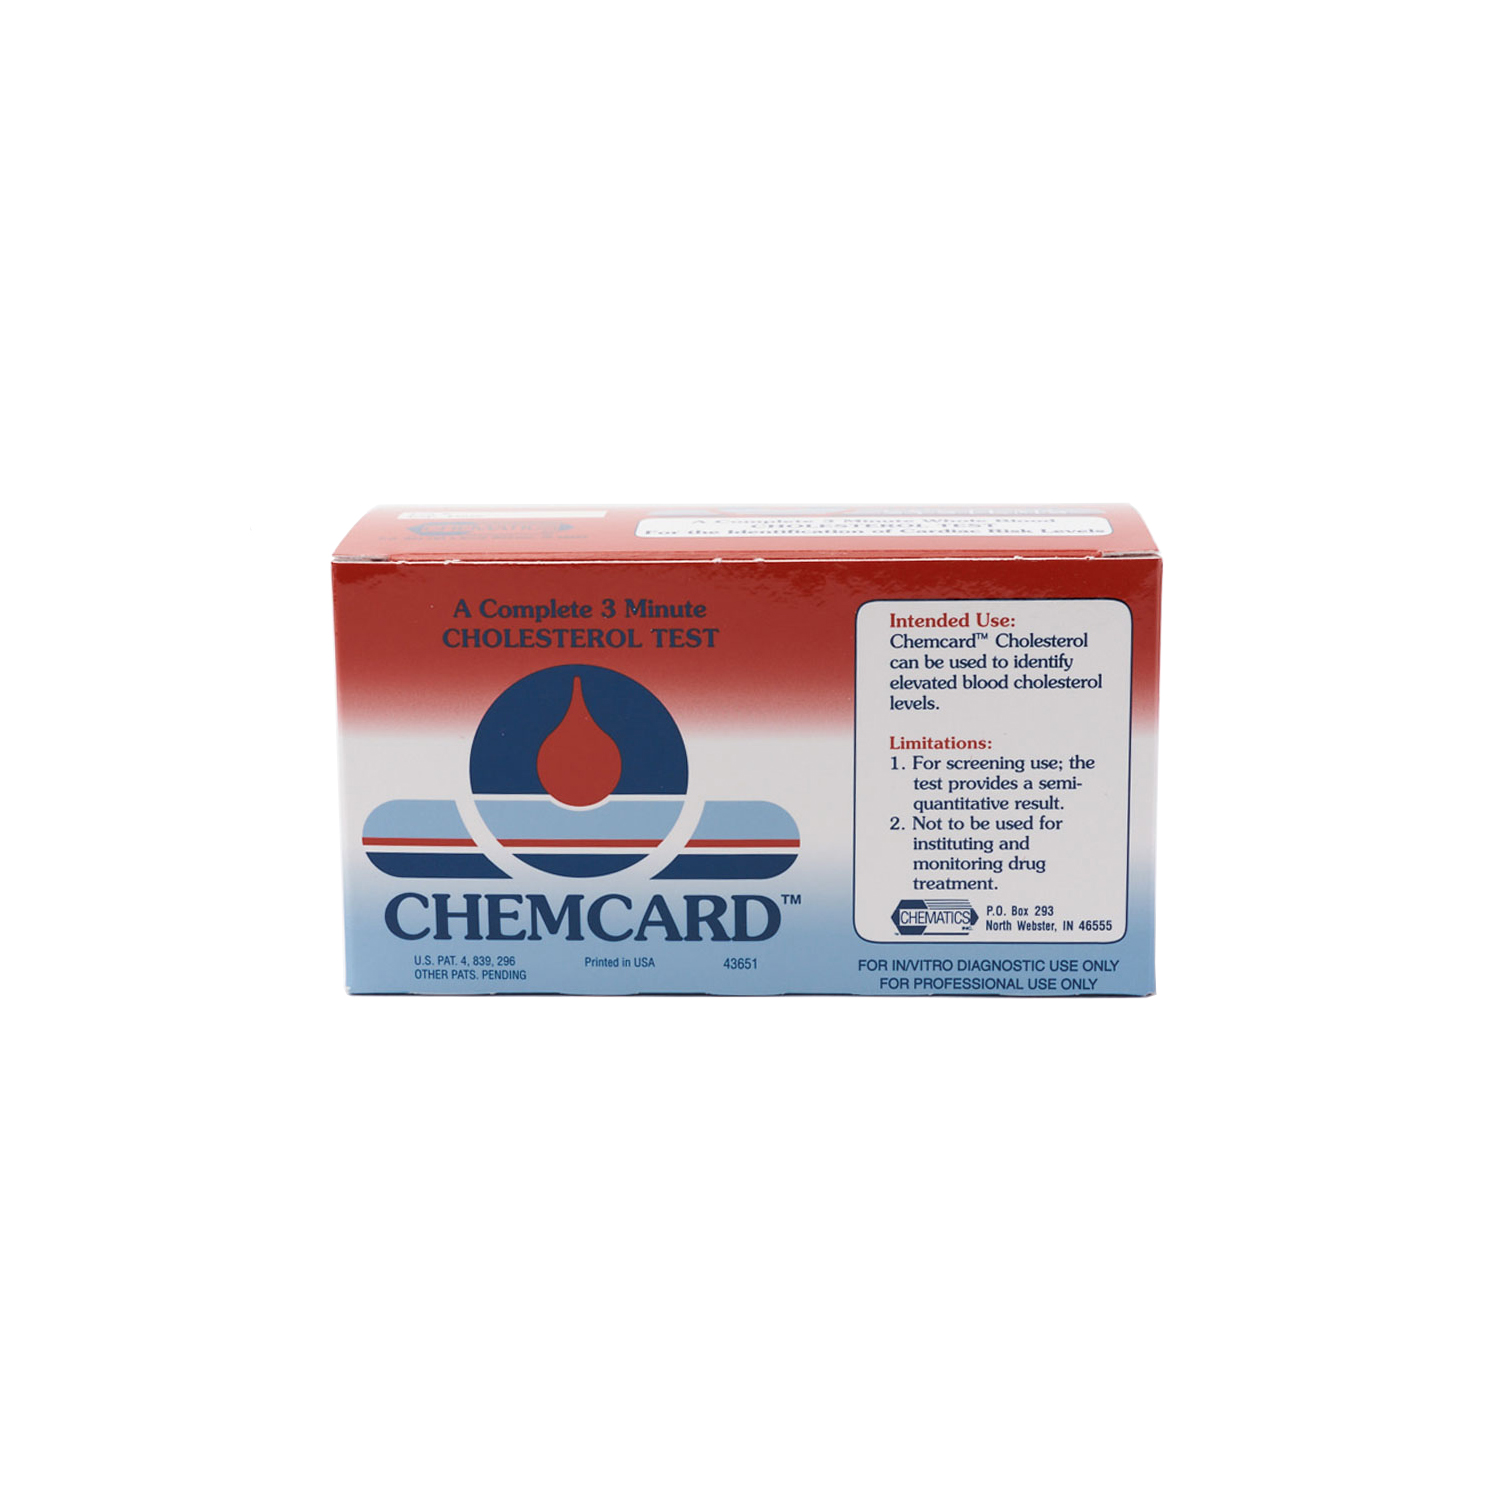 Chemcard Cholesterol Test (Box of 24 Tests)